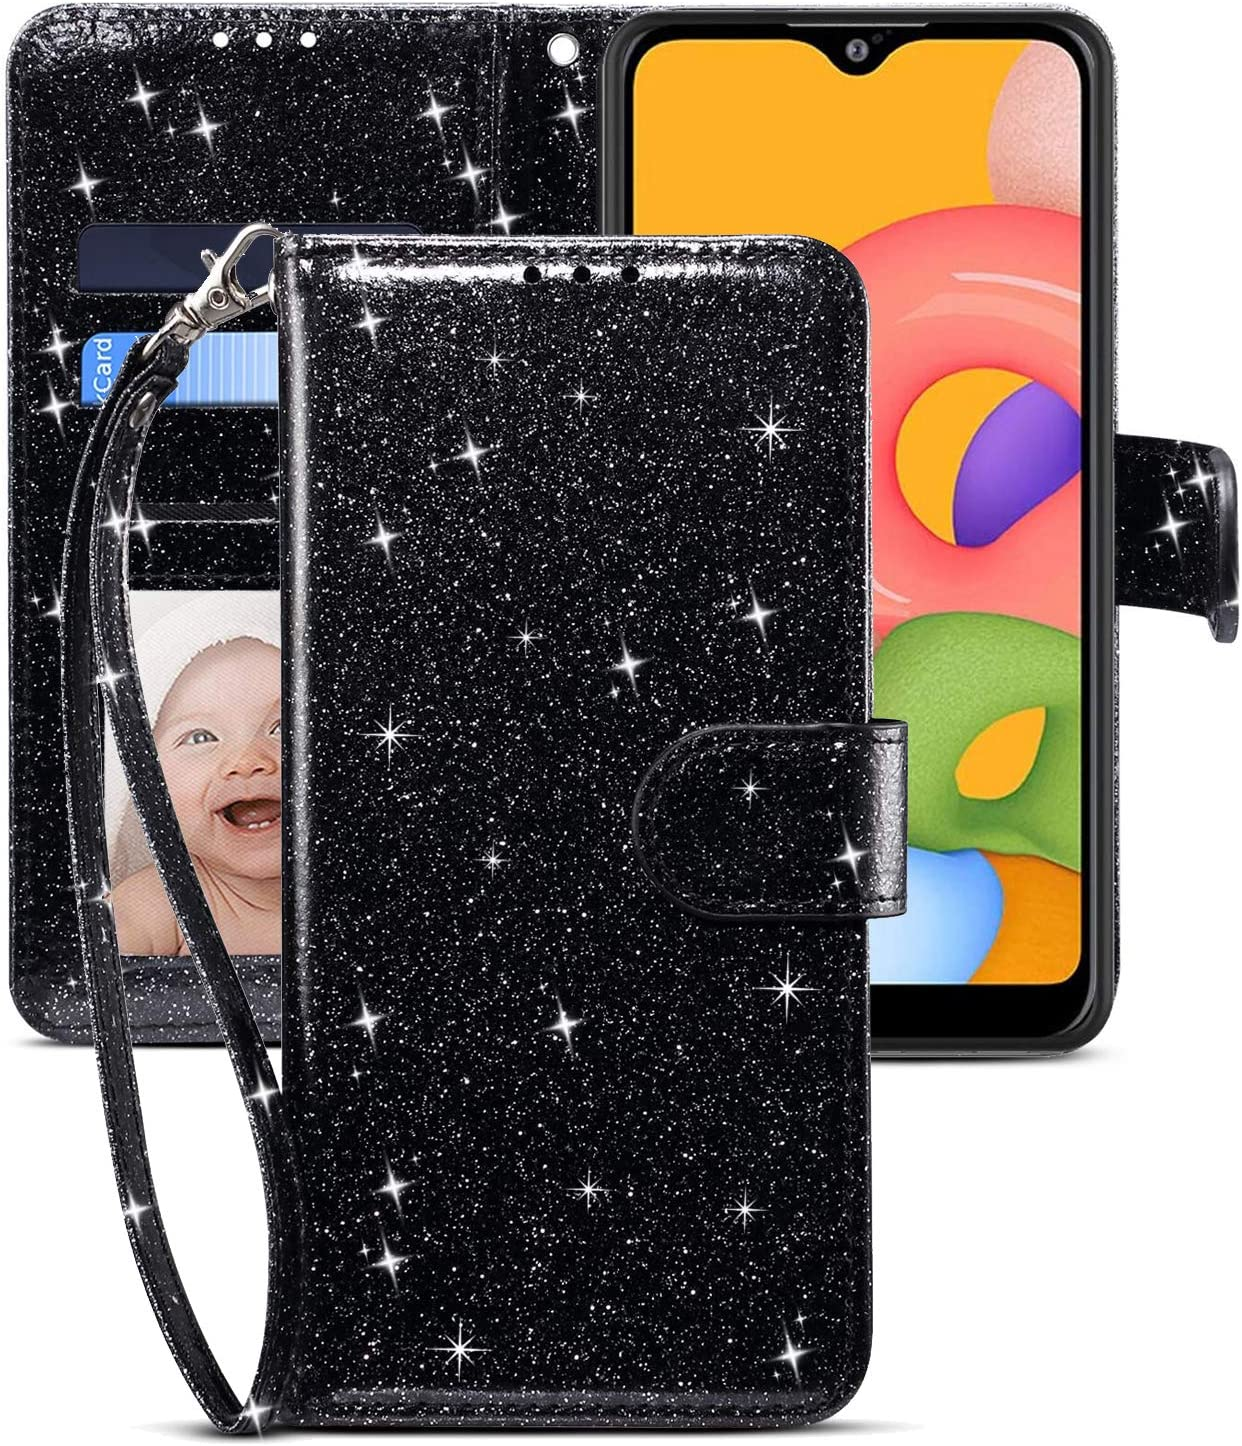 CHICASE Case for Galaxy A01,Samsung A01 Case,Folding Flip Glitter Bling Cute Leather Wallet Shockproof Protective Case with Kickstand Card Slots Wrist Strap Magnetic for Samsung Galaxy A01 (Black)